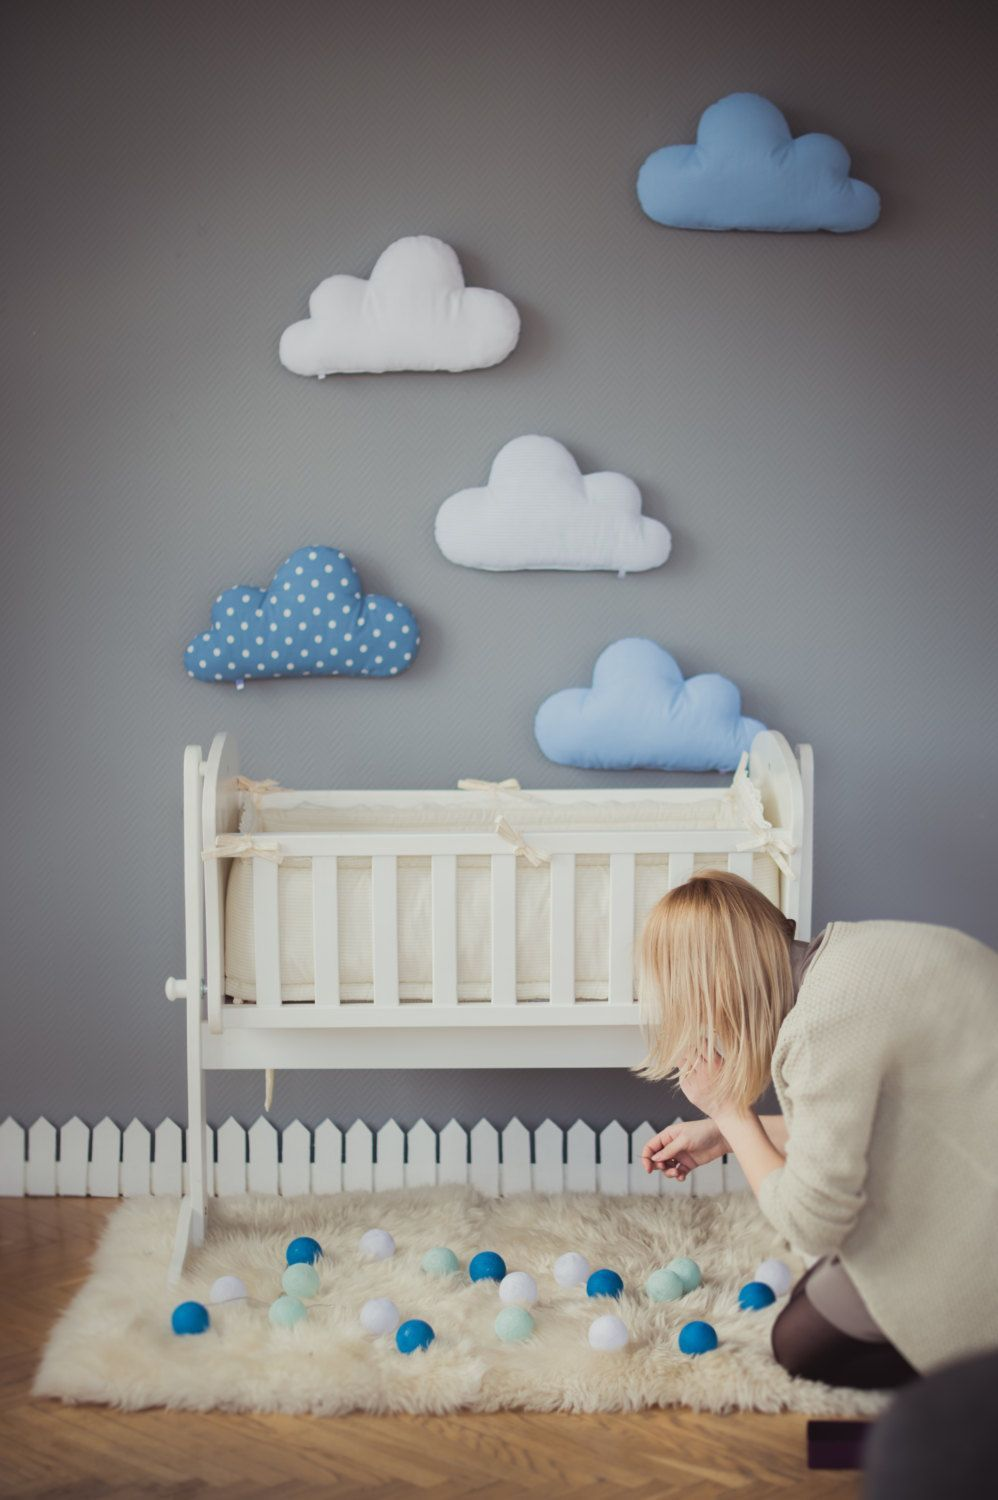 10 Great Baby Room Ideas For Parents To Use In Their Decor